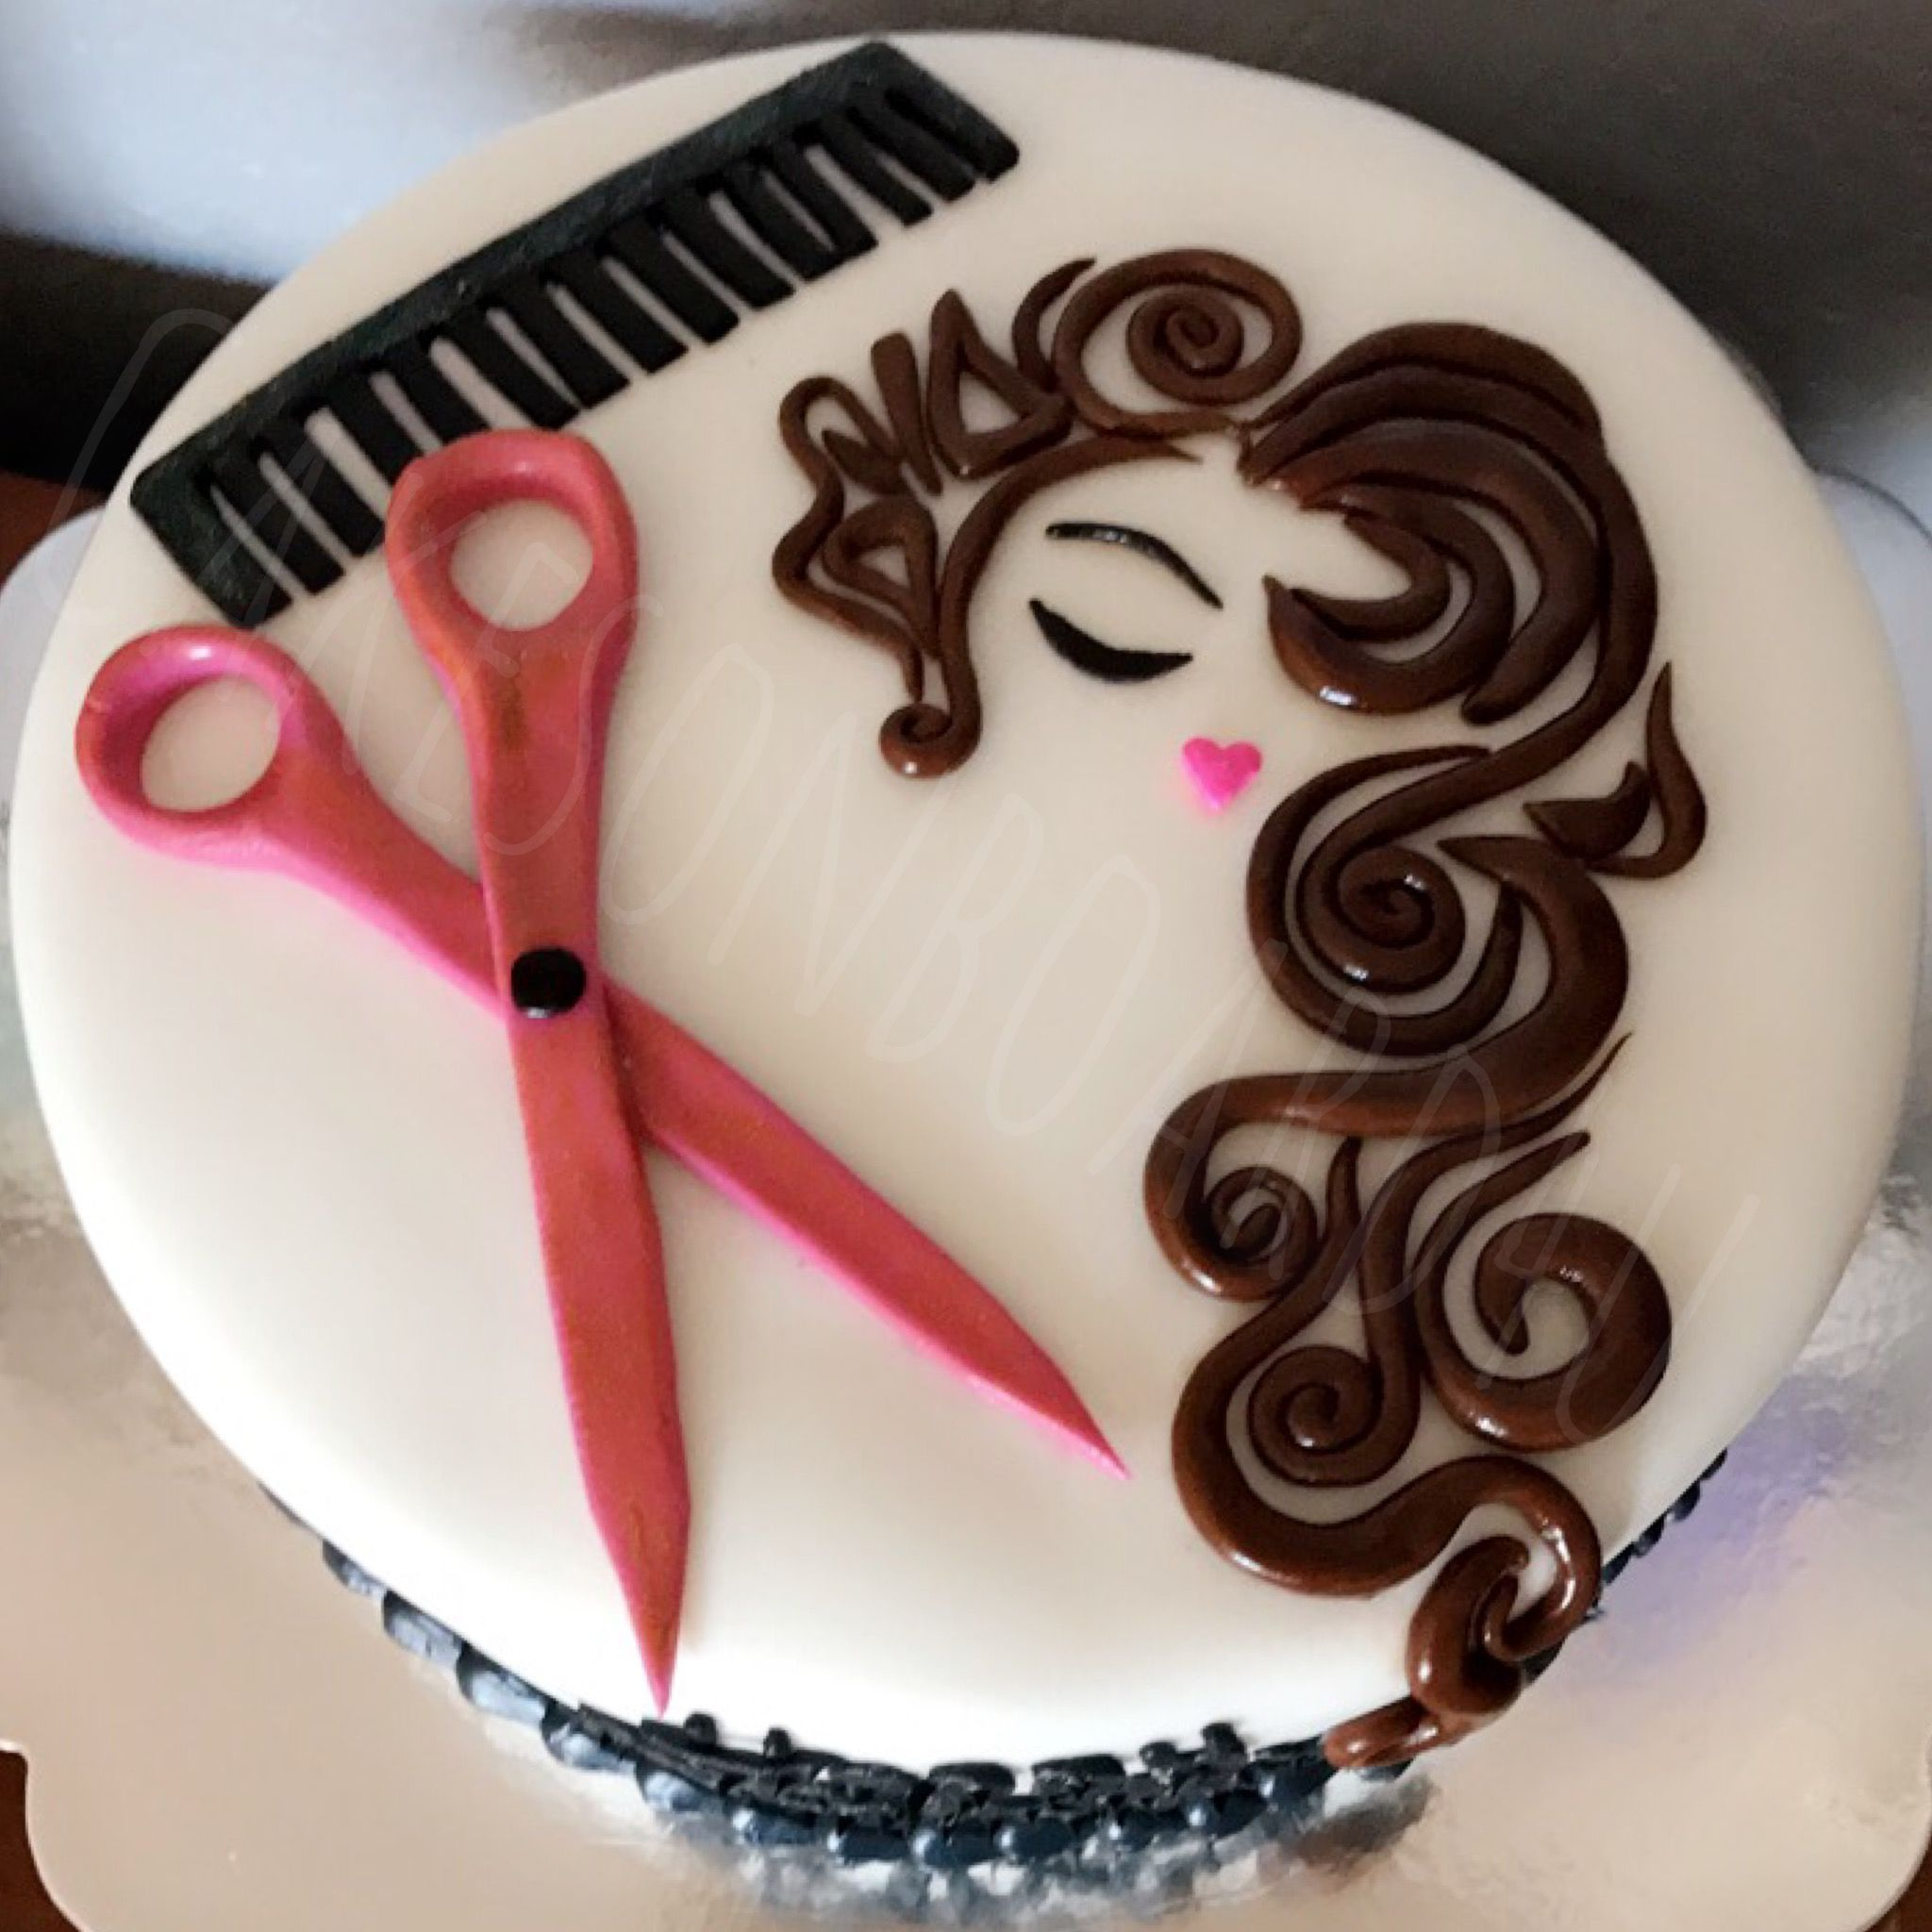 Hairdresser cake scissors comb face  Cakes on Board